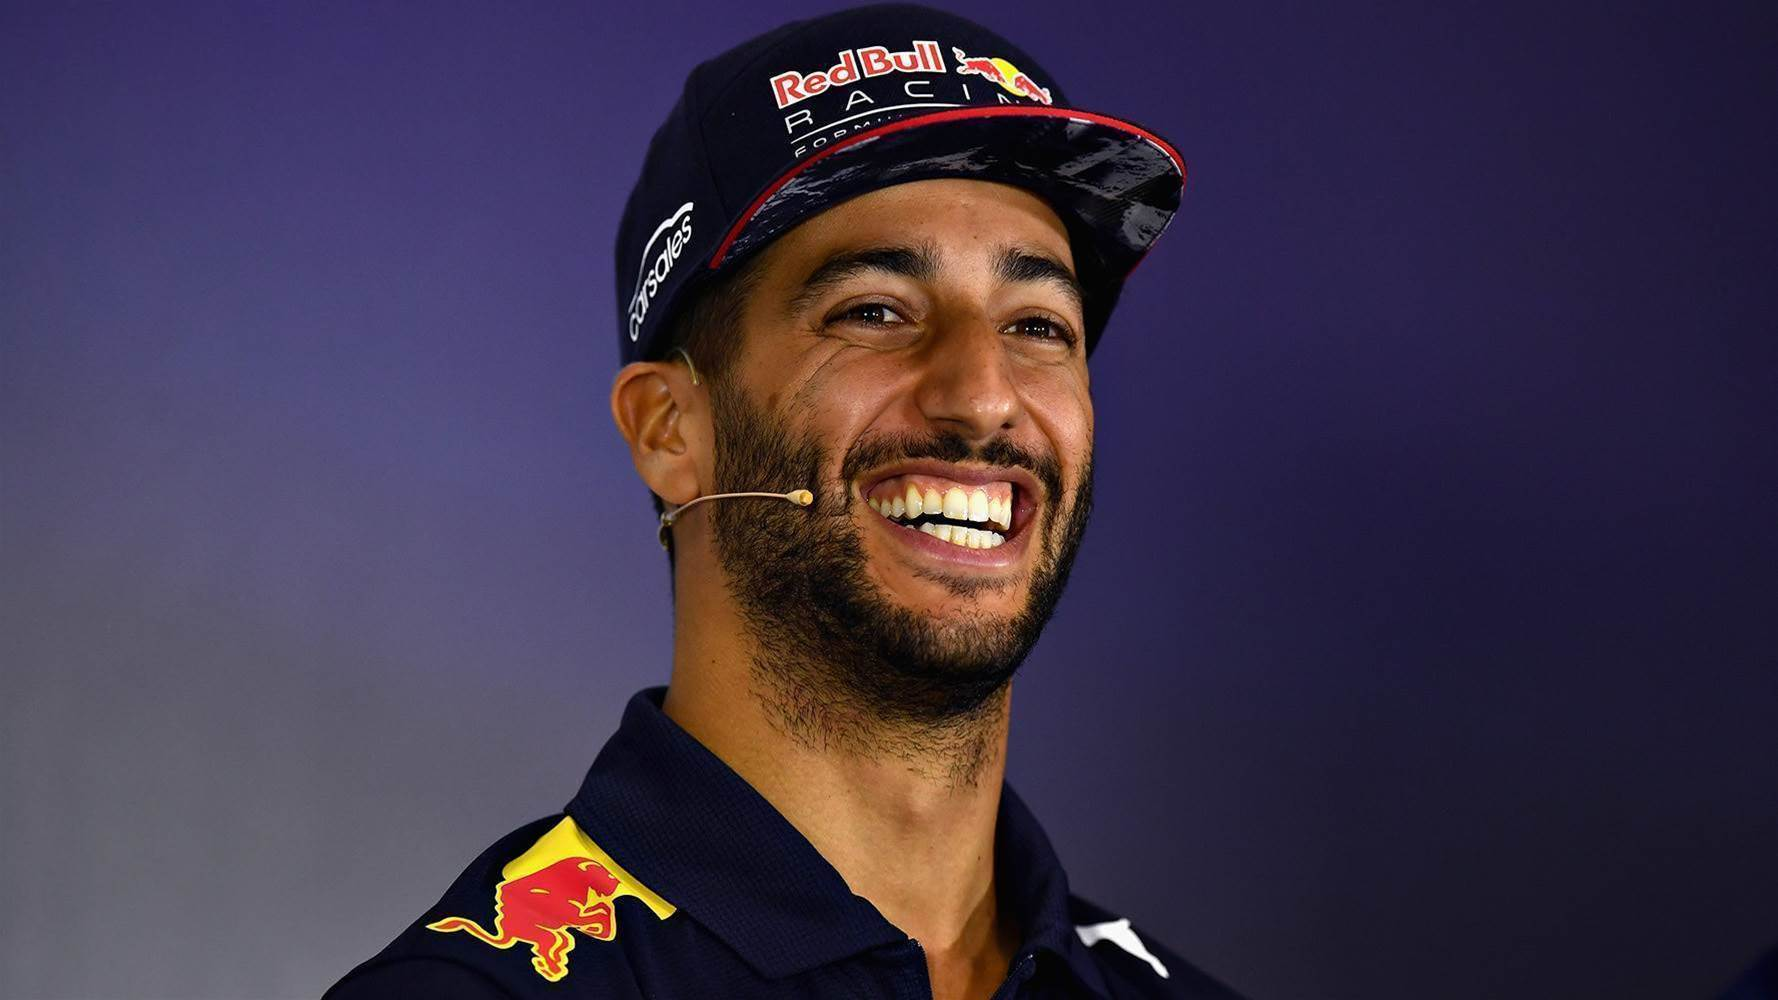 Ricciardo: The king of fair play